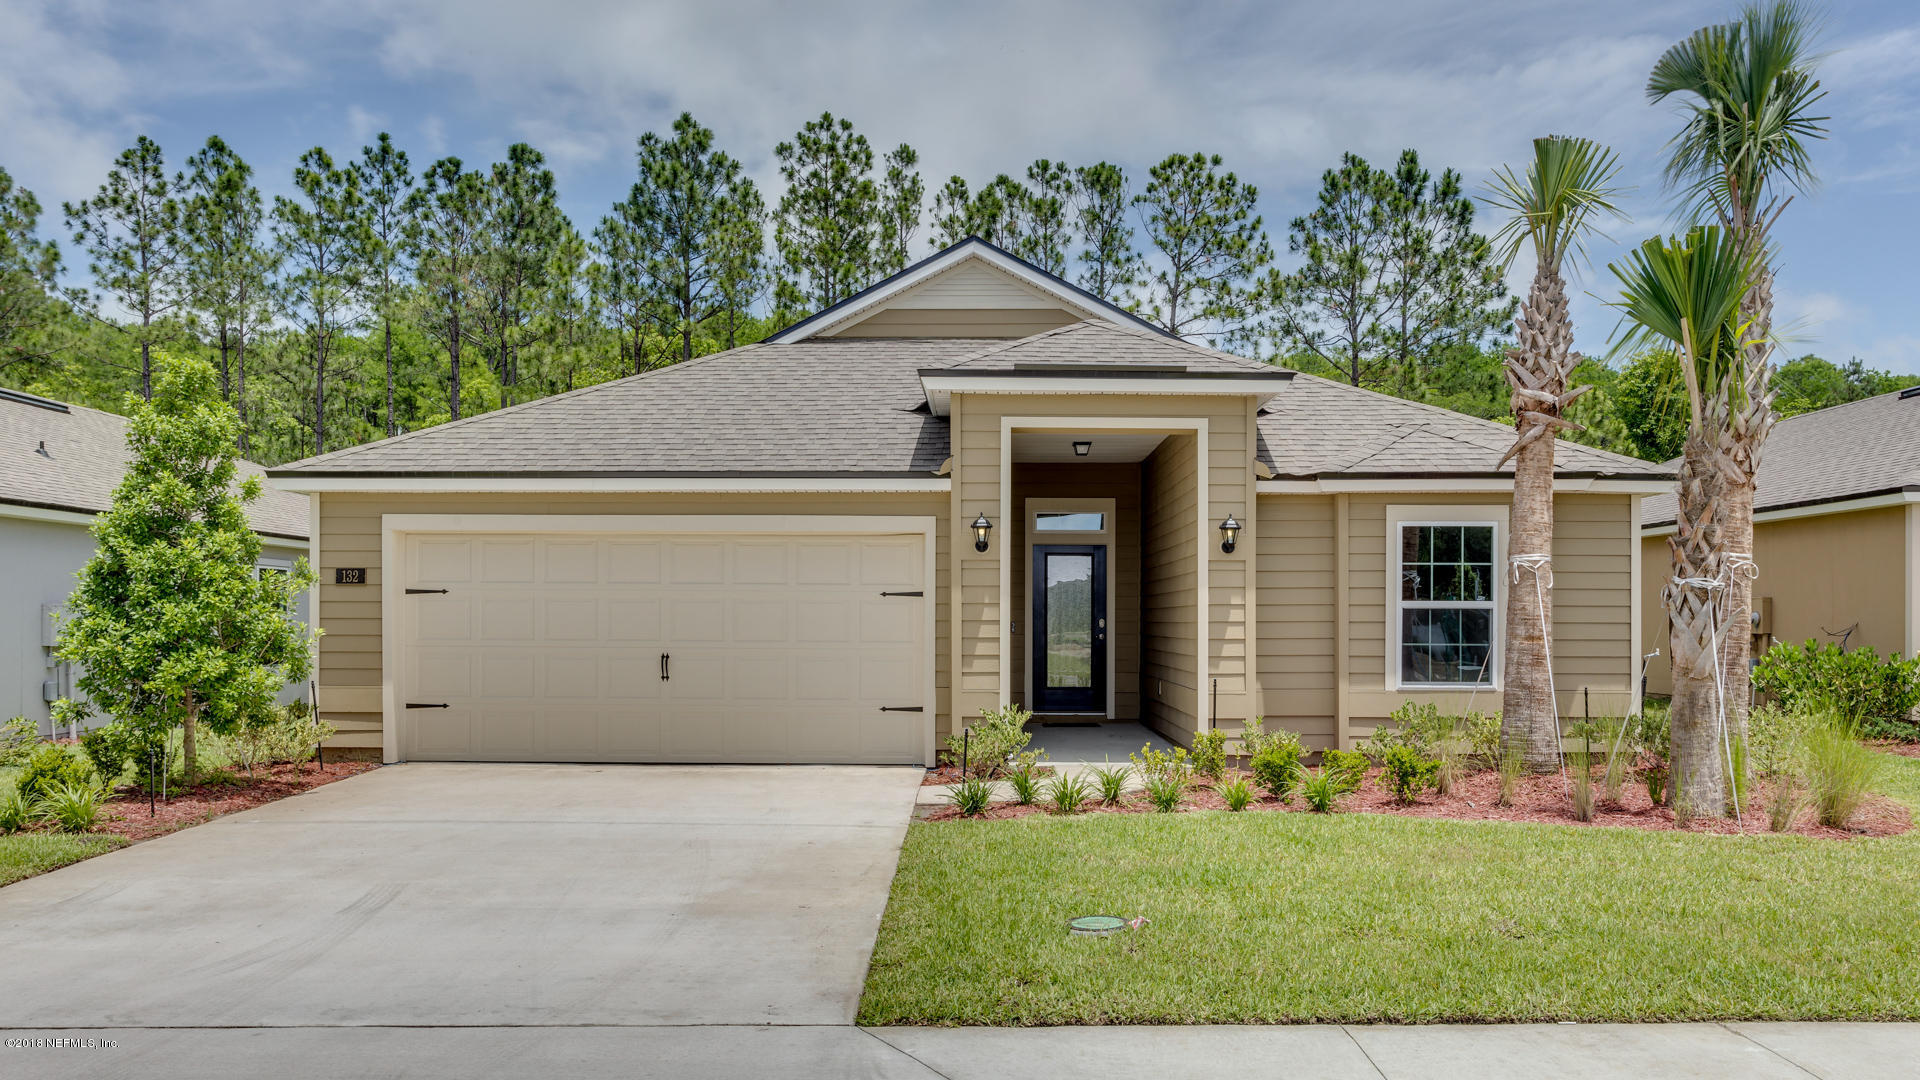 132 PALACE, ST AUGUSTINE, FLORIDA 32084, 4 Bedrooms Bedrooms, ,2 BathroomsBathrooms,Residential - single family,For sale,PALACE,897468